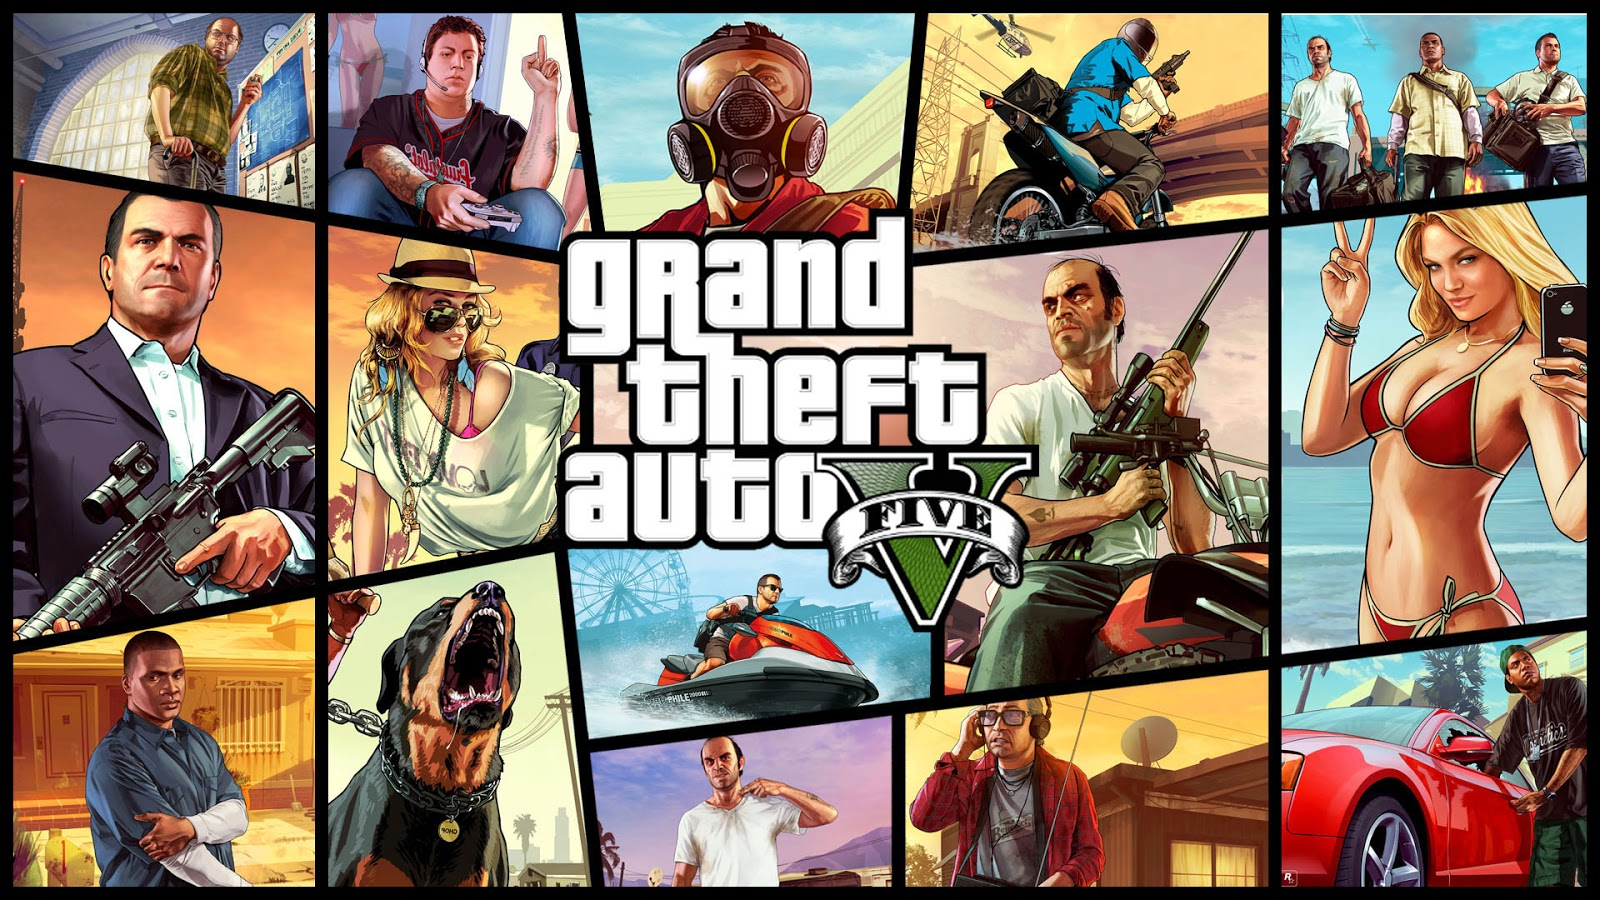 Download Grand Theft Auto 5 game for free Grand theft auto on Android and iPhone devices in 3 minutes